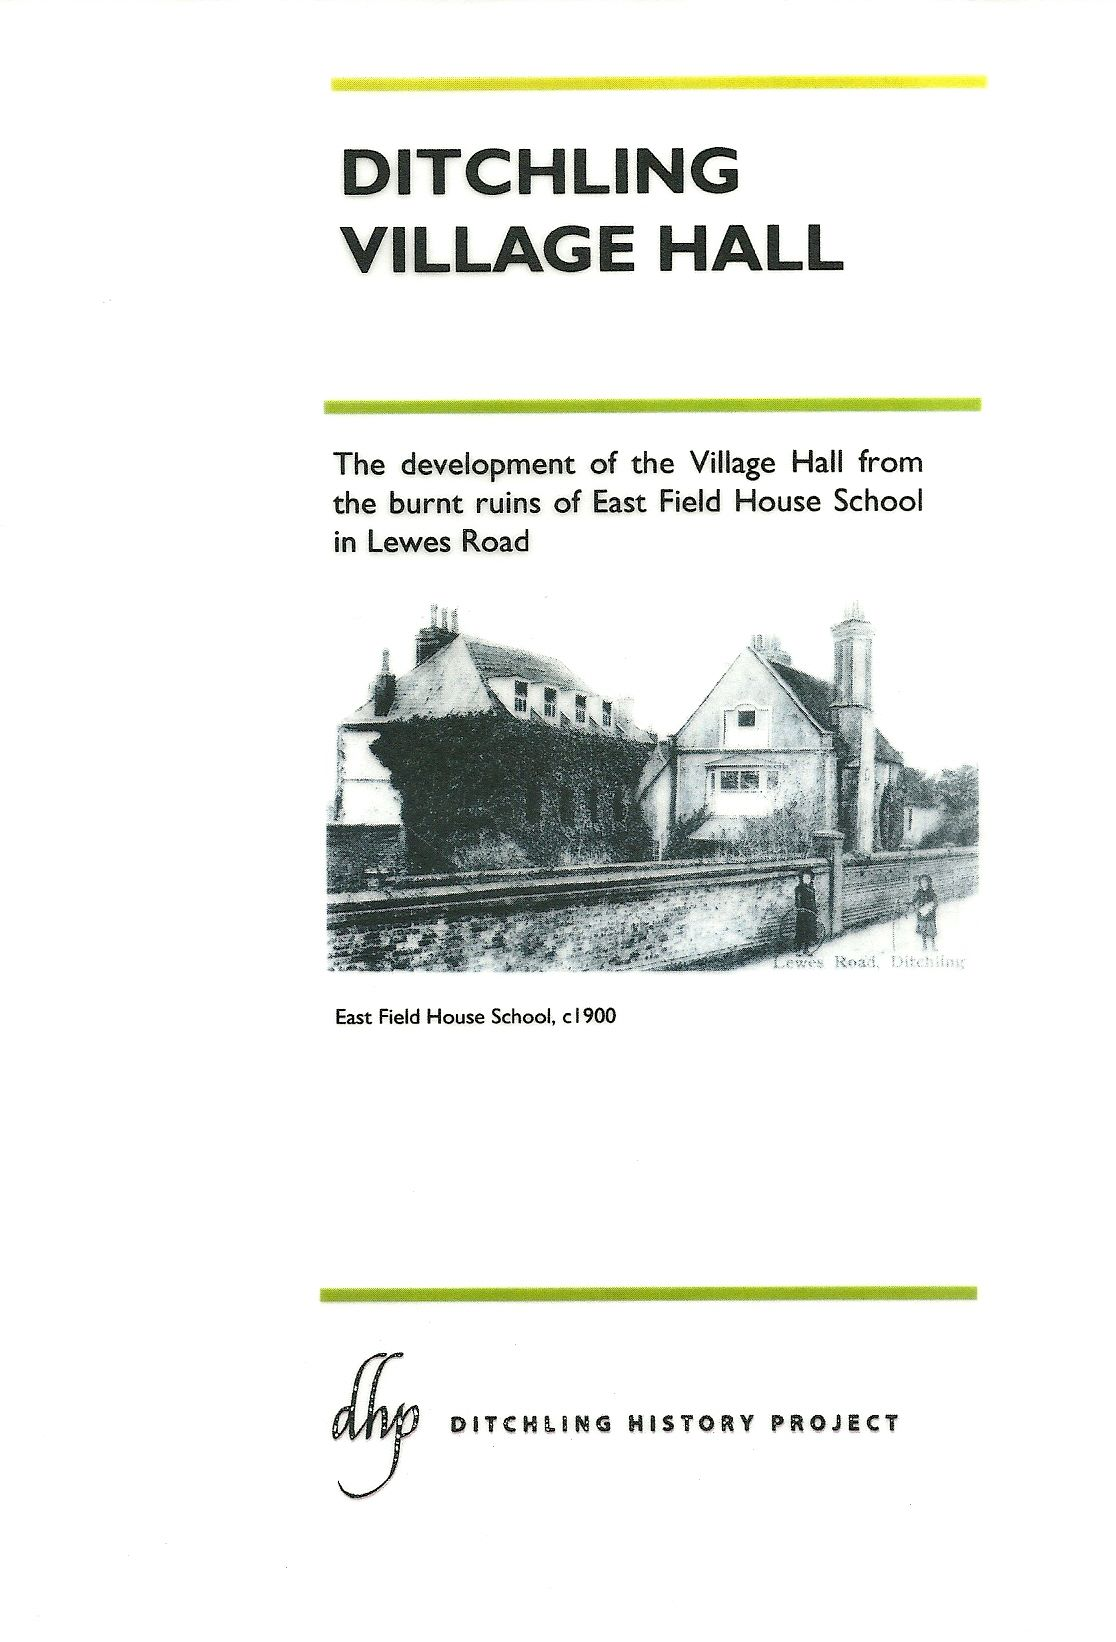 The provision of Ditchling Village Hall